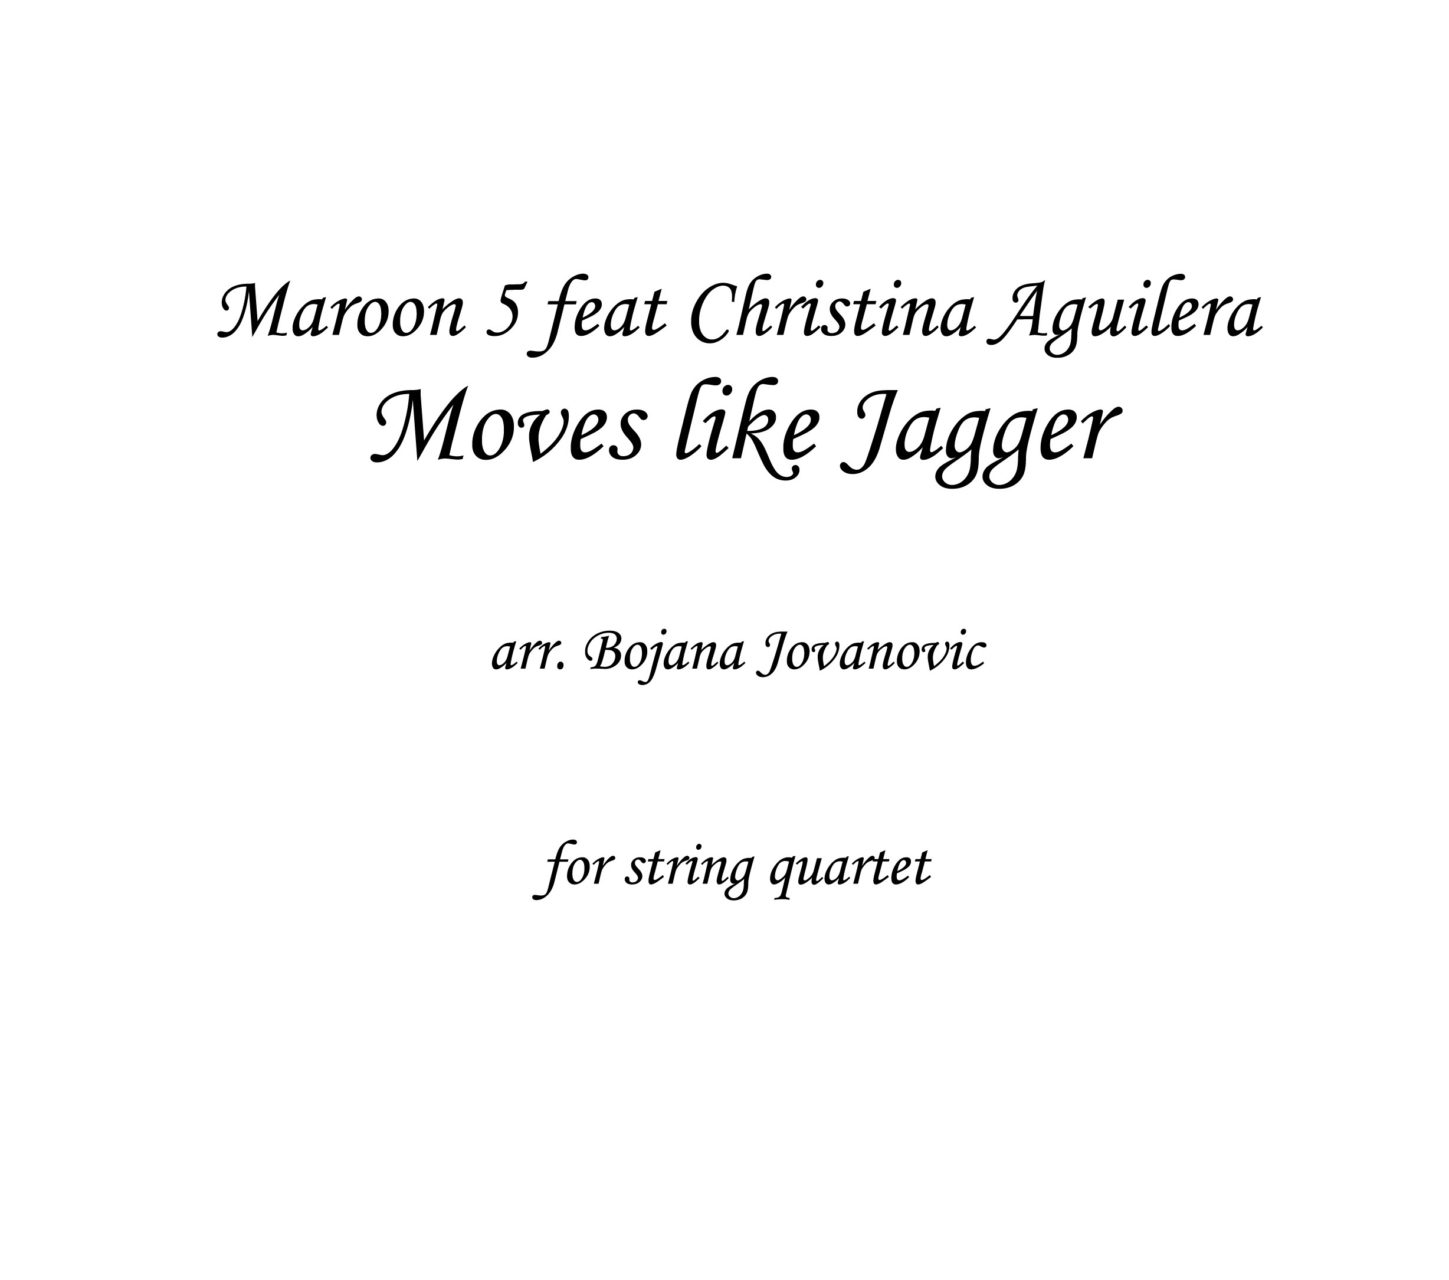 the arrangement for moves like jagger Moves like jagger is a dance pop single released by american pop rock band maroon 5 on june 22, 2011 internationally and digitally the single features pop singer-songwriter christina aguilera and was produced by shellback, benny blanco, and ari levine.